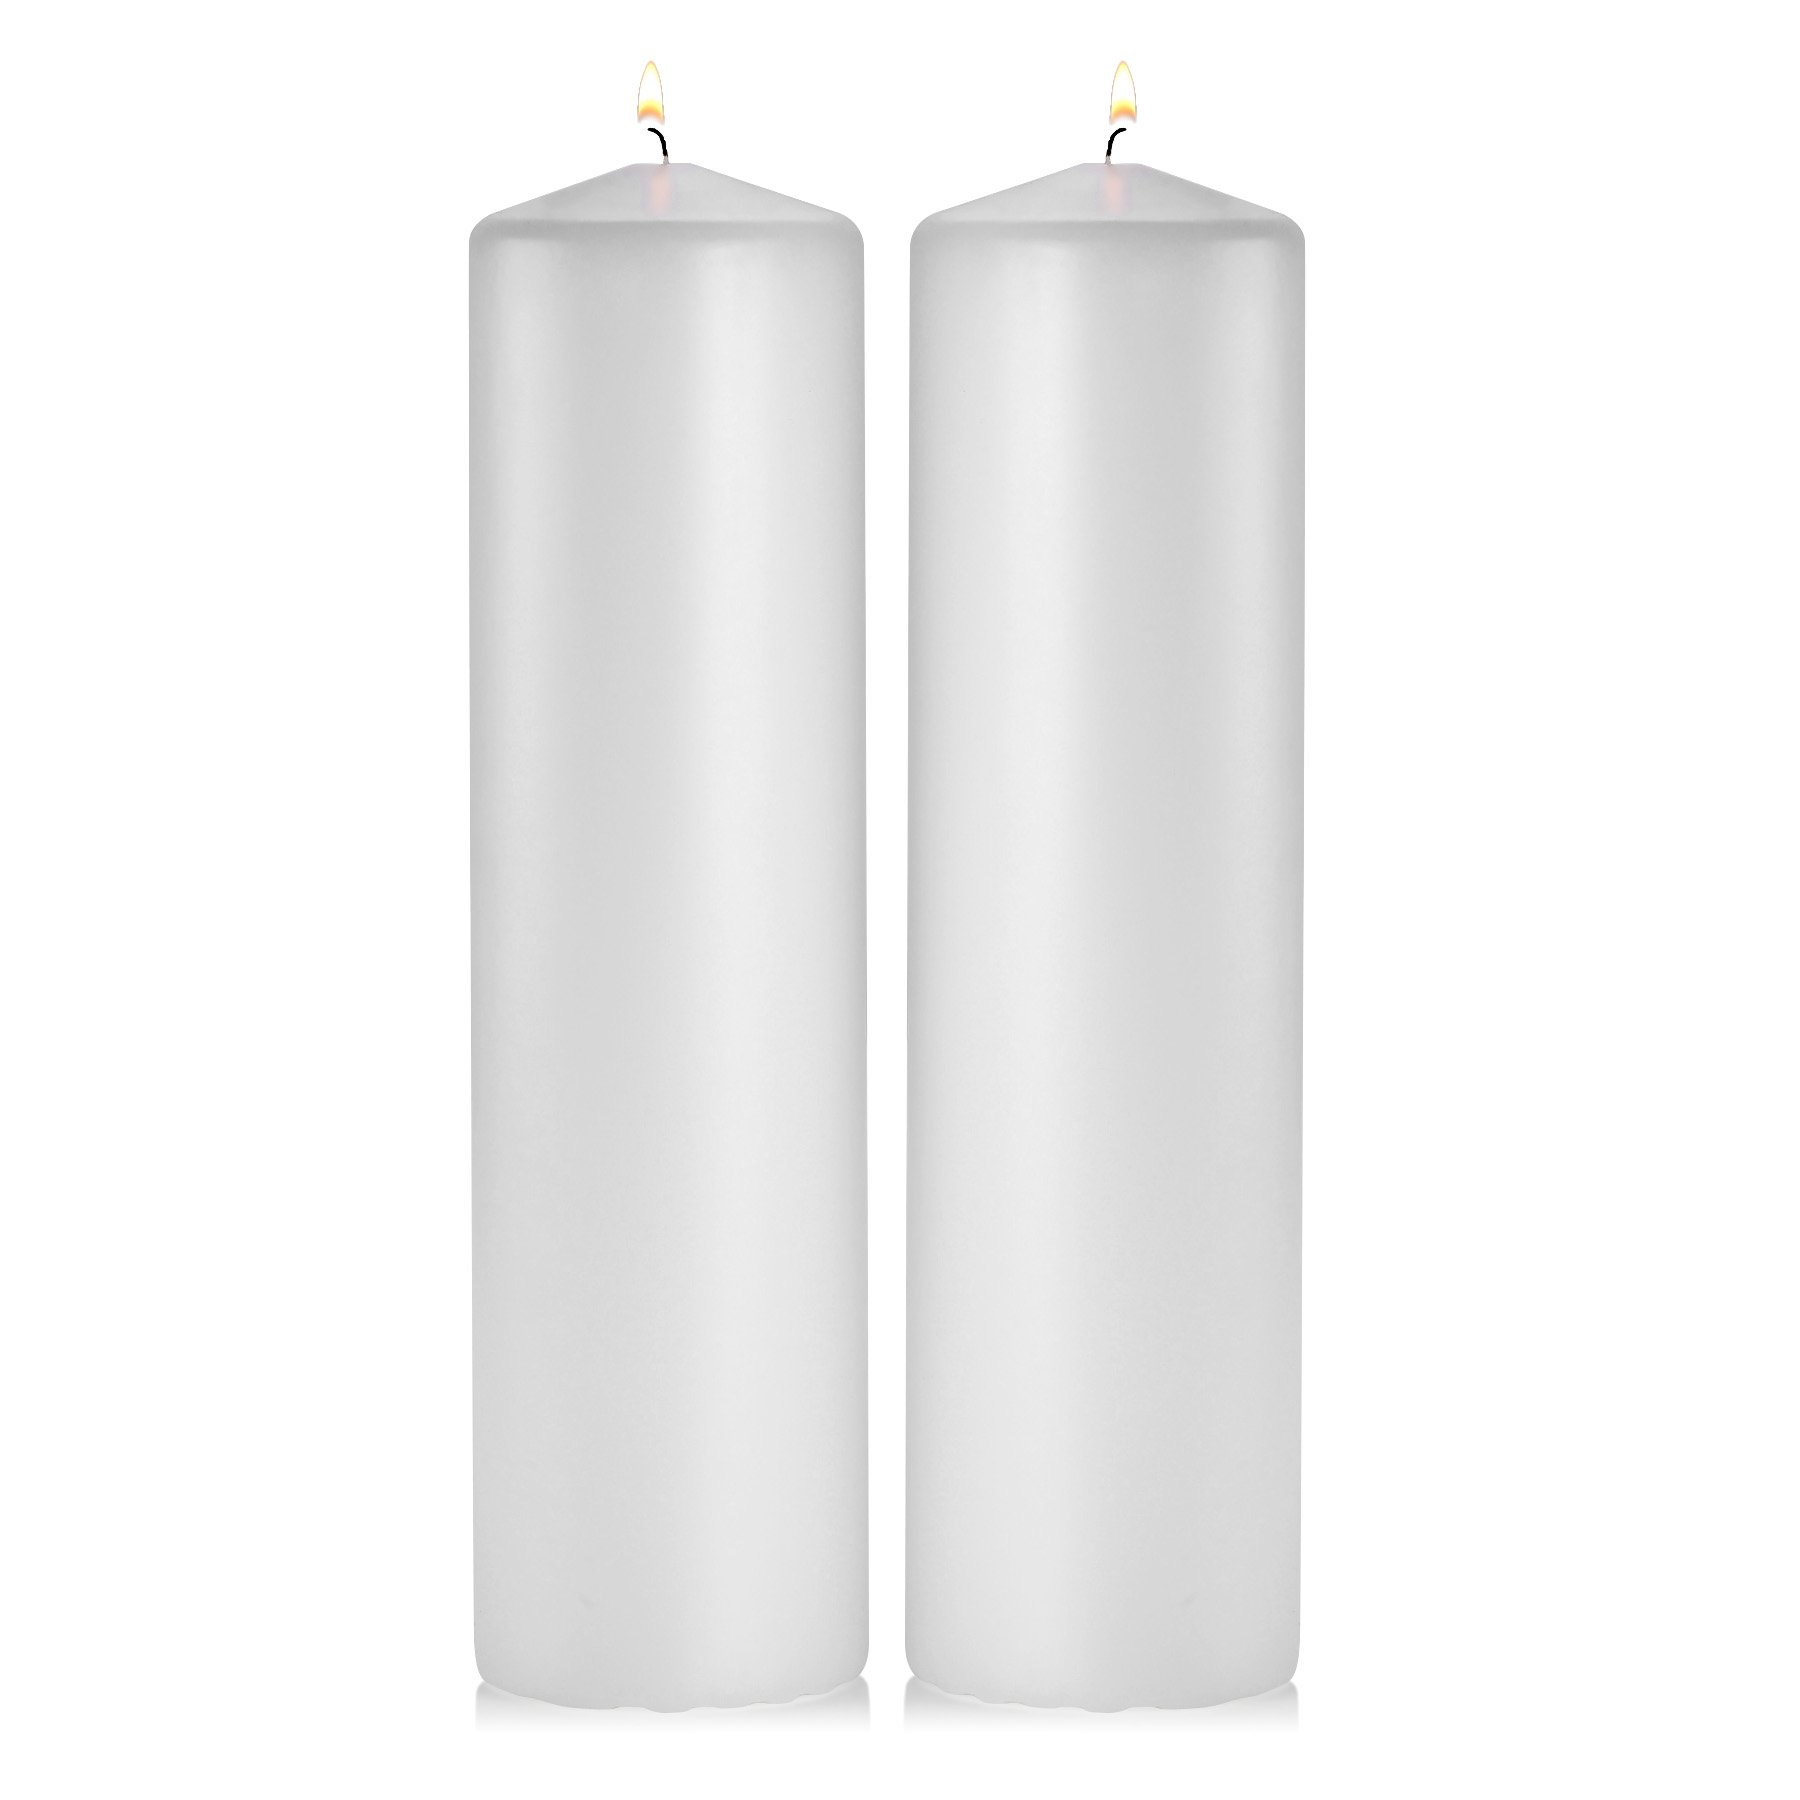 Light In the Dark White Pillar Candles - Set of 2 Unscented Pillar – 3x12 inches for Wedding Centerpiece candle, Home Decor and Holiday Celebrations